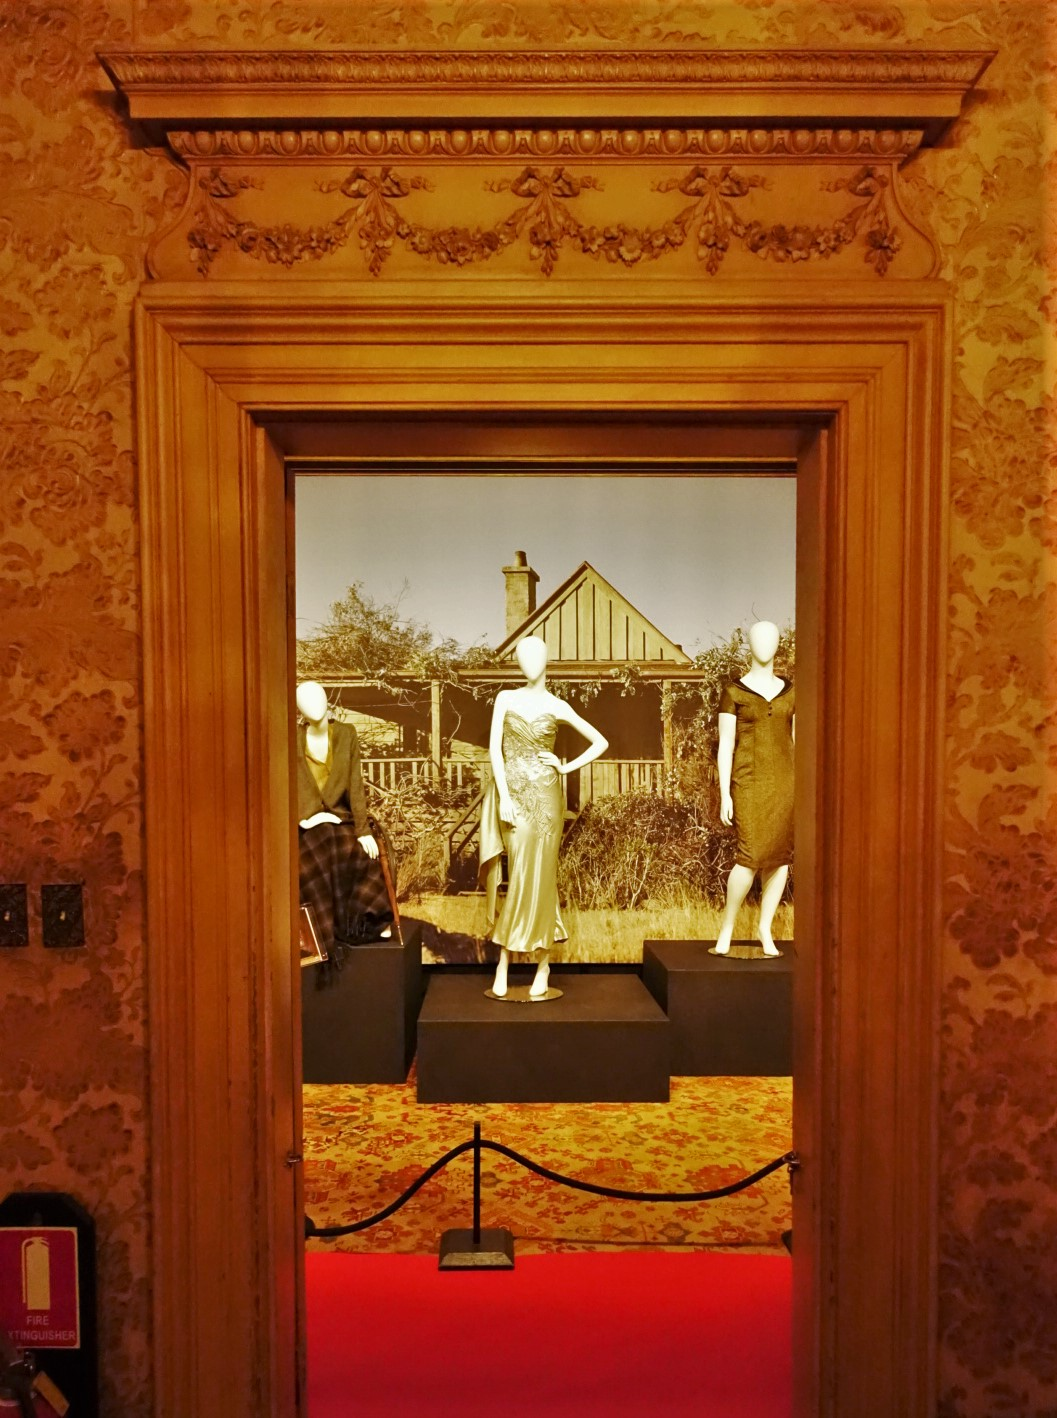 The Dressmaker Exhibition